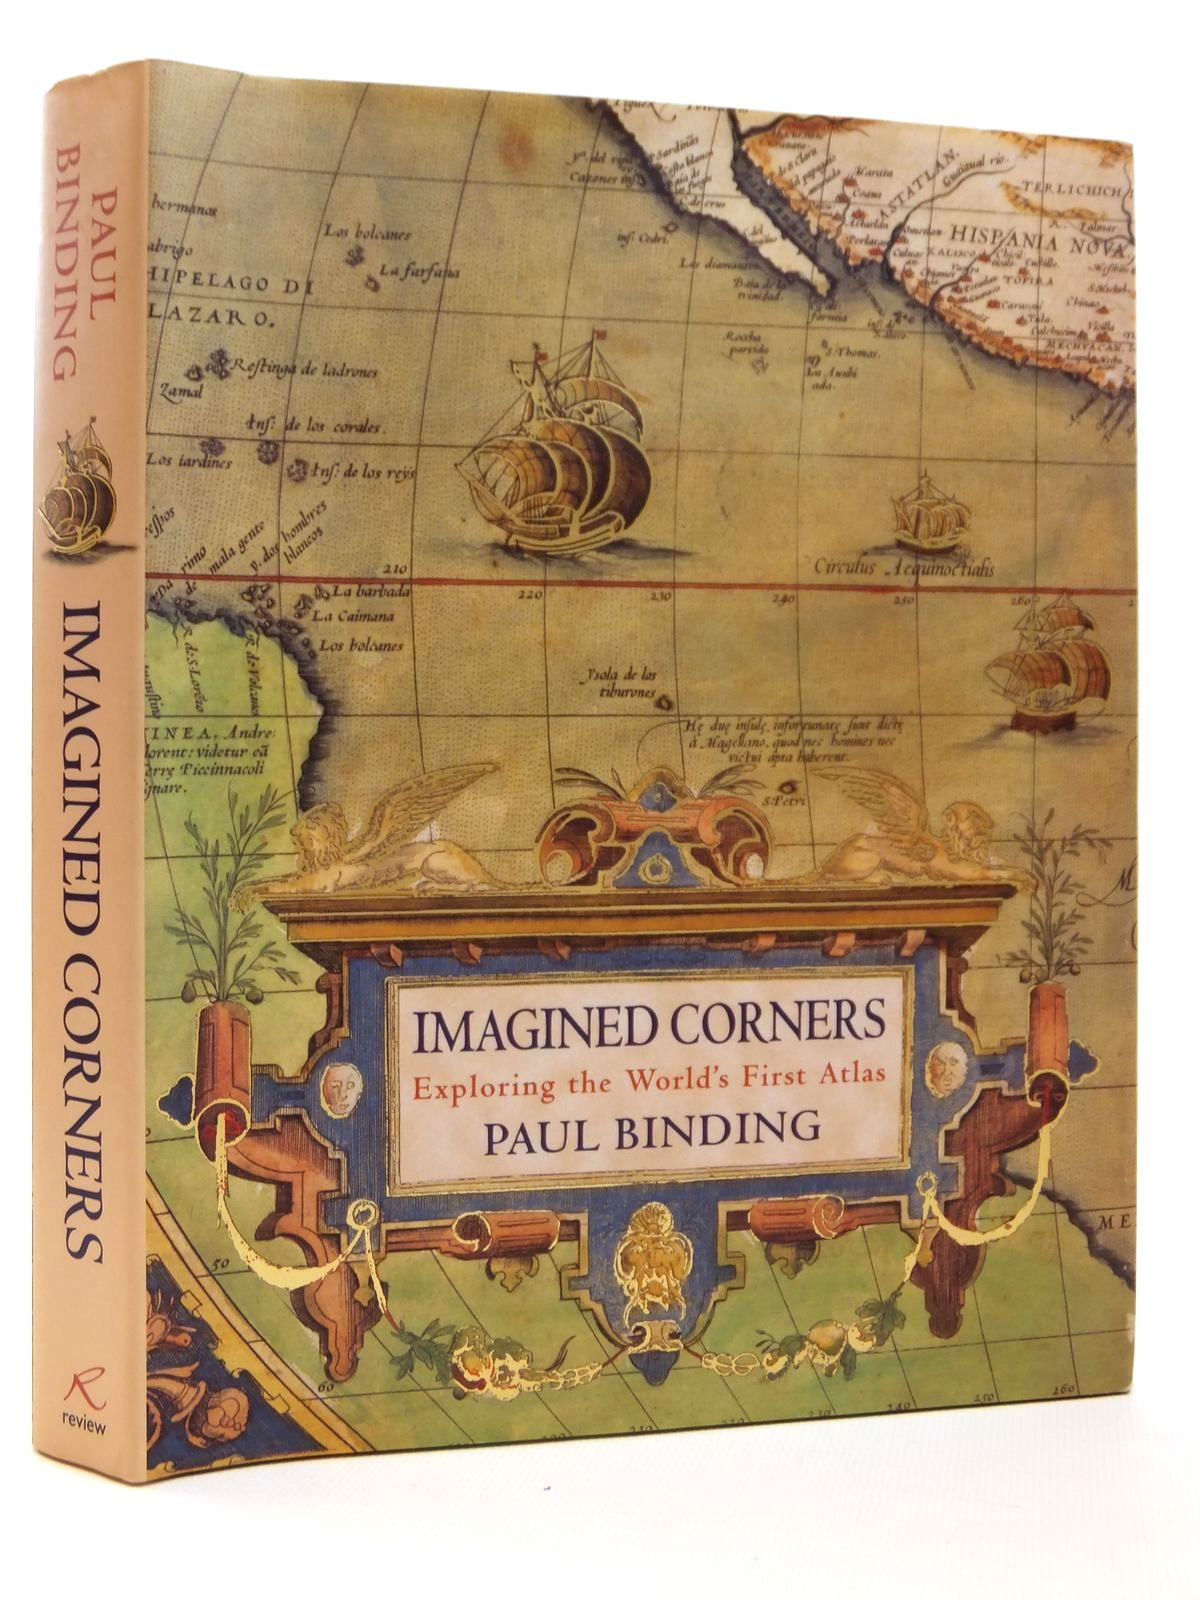 Photo of IMAGINED CORNERS EXPLORING THE WORLD'S FIRST ATLAS written by Binding, Paul published by Review (STOCK CODE: 1608306)  for sale by Stella & Rose's Books